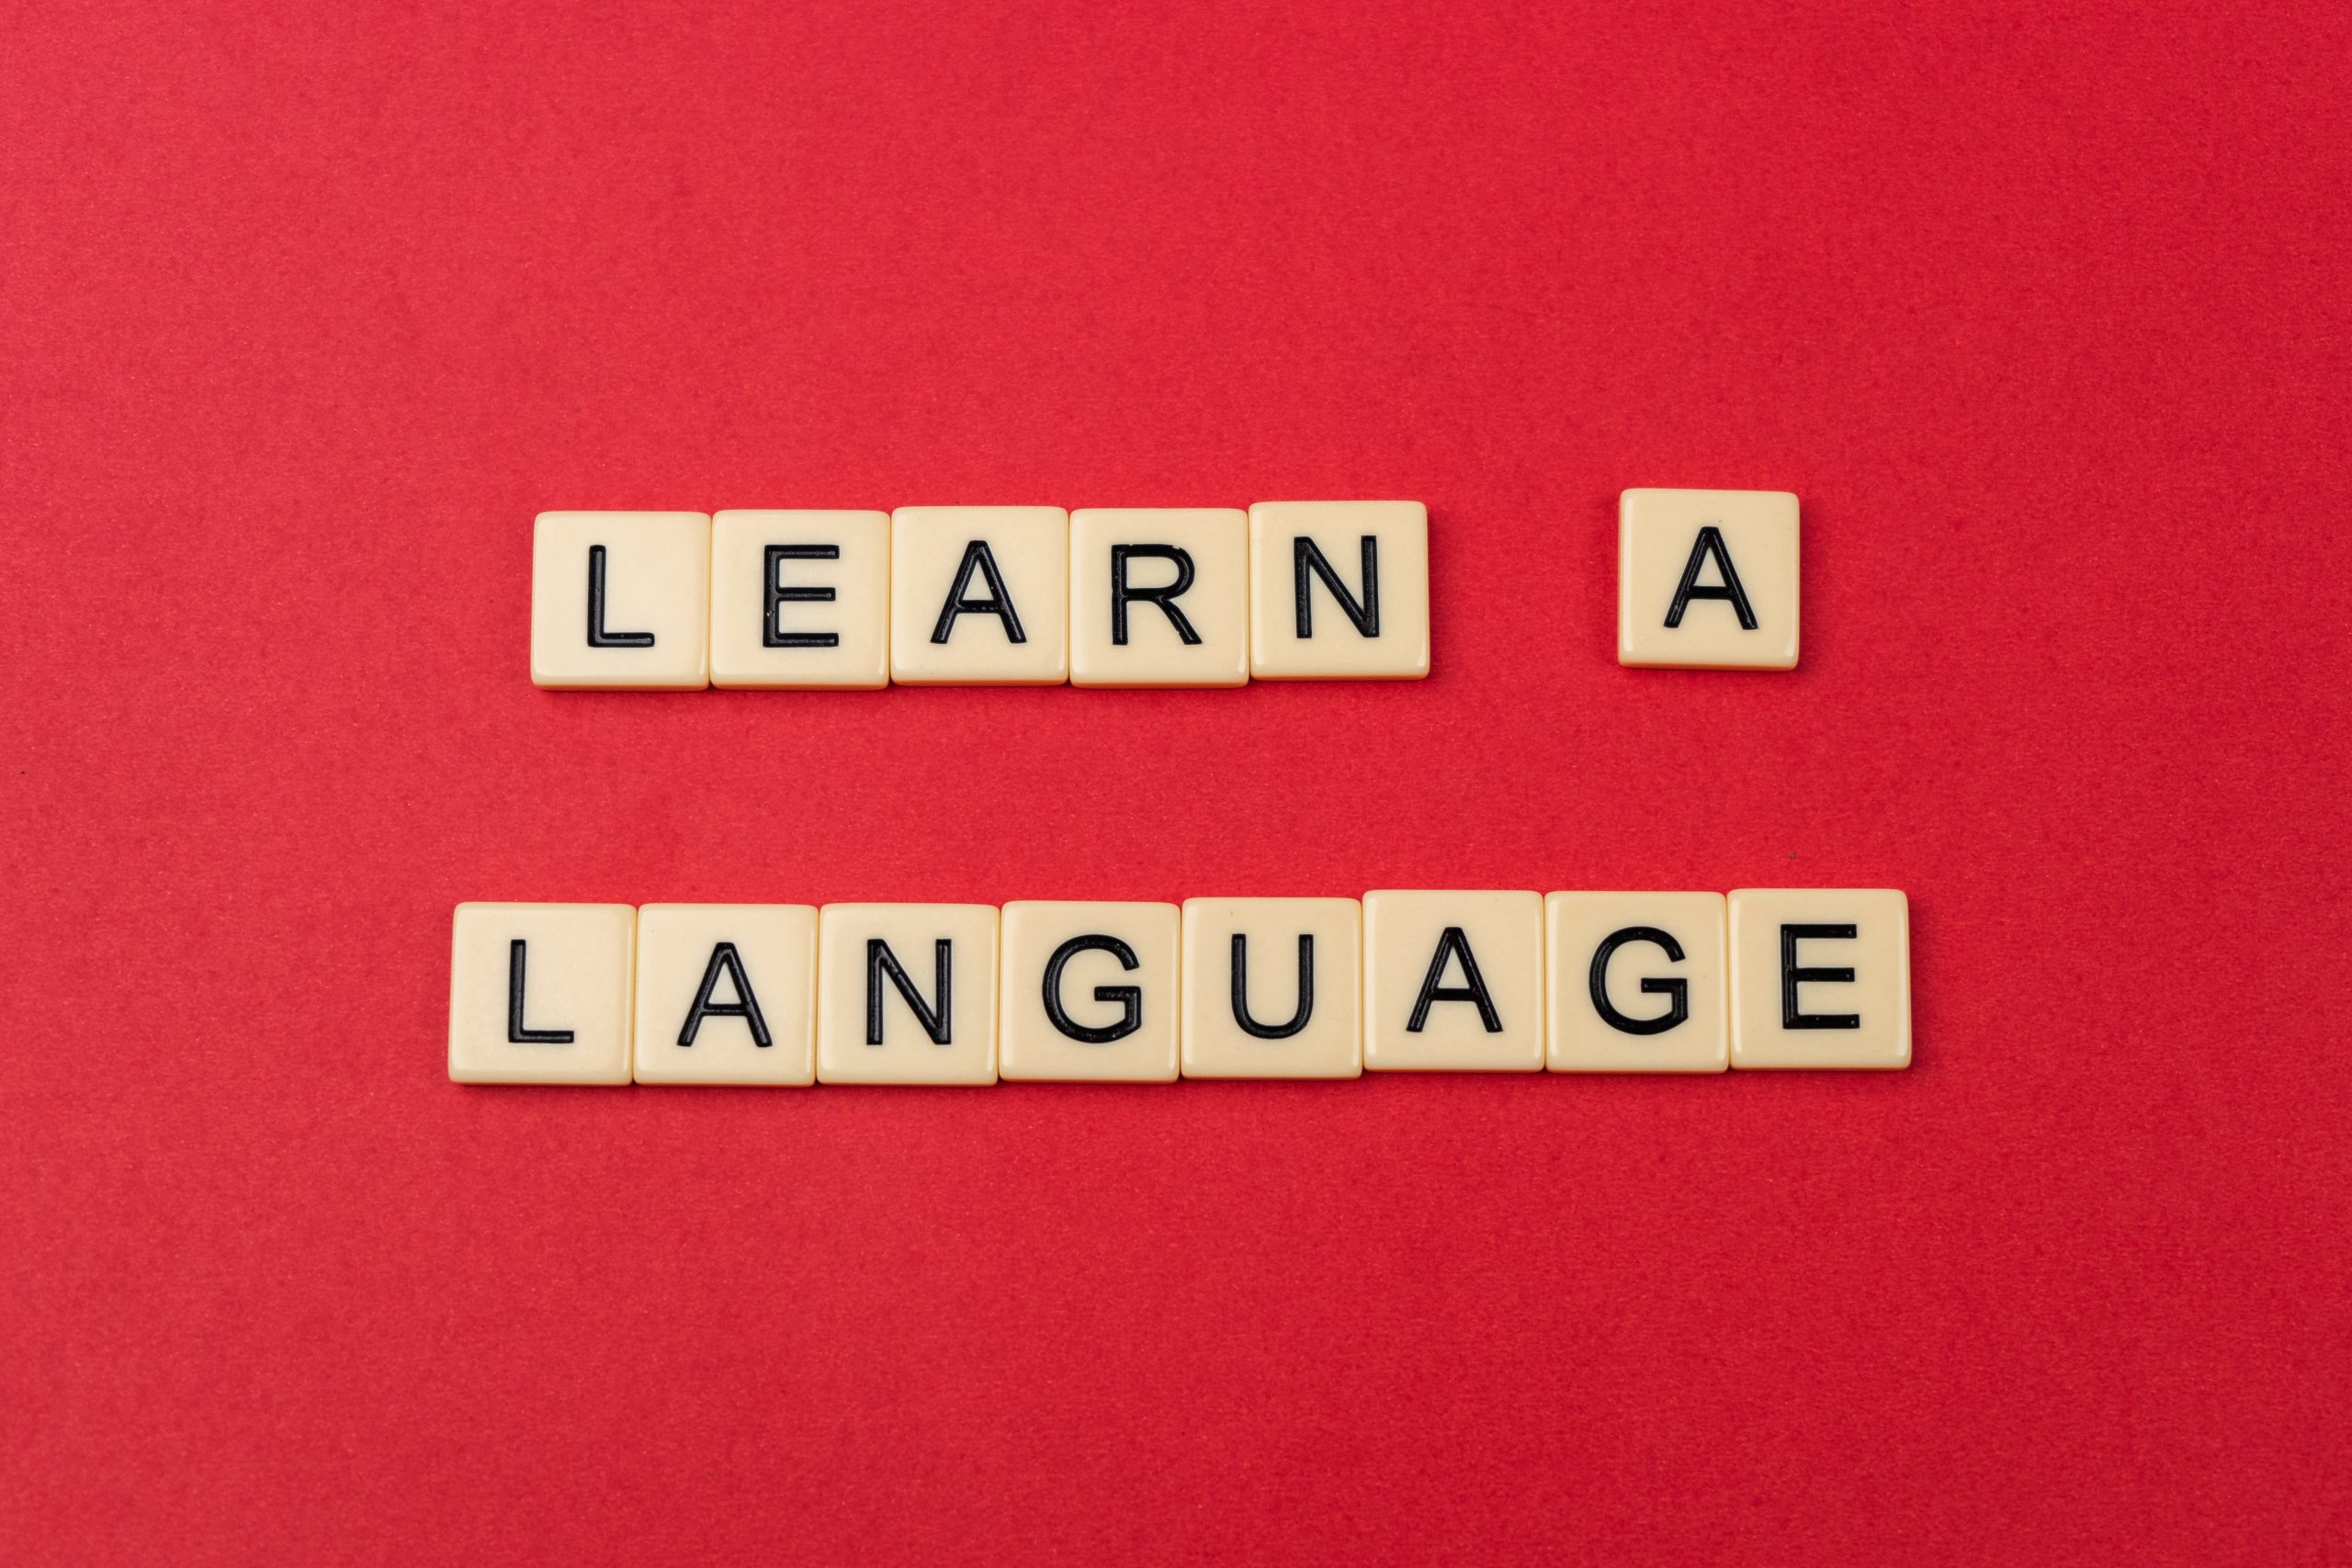 Learn a language written with scrabble